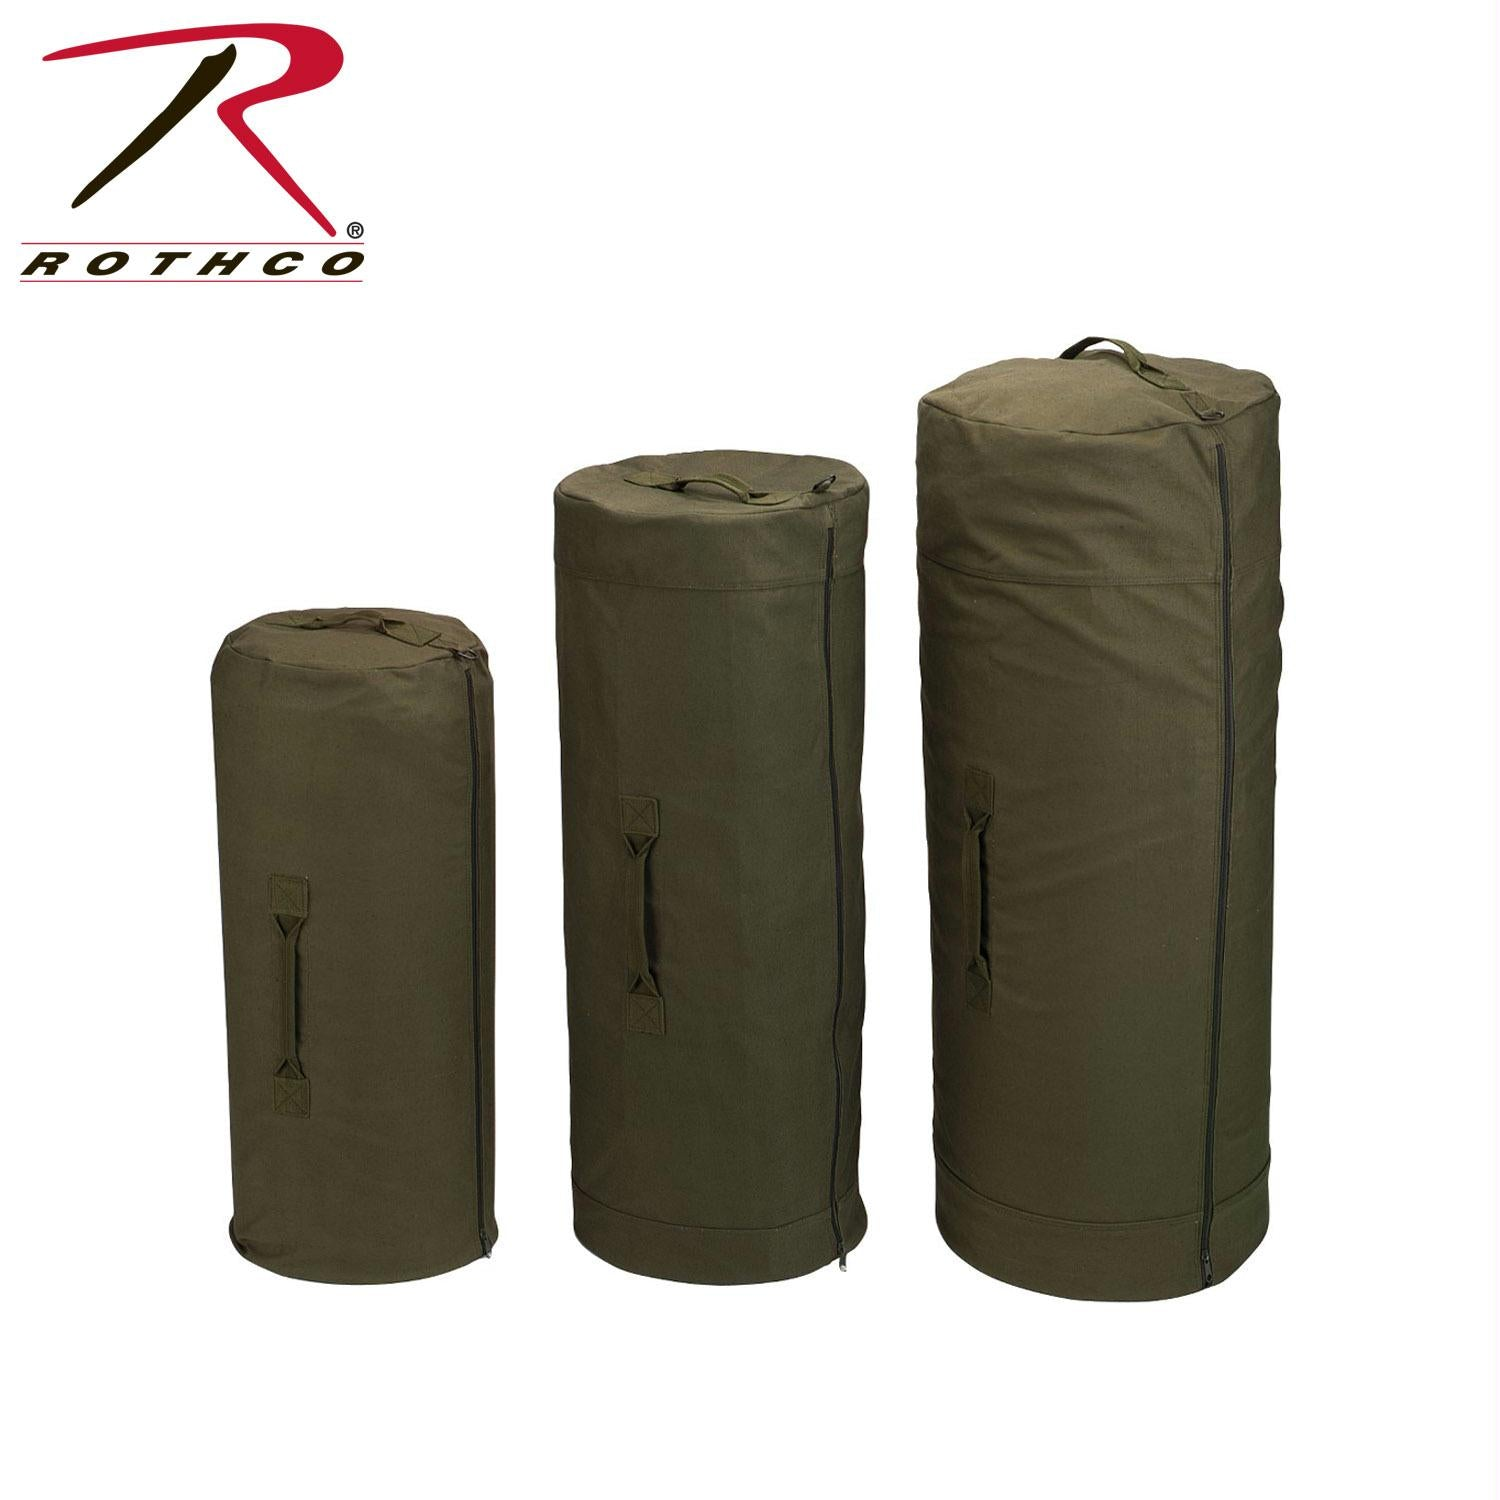 Rothco Canvas Duffle Bag w/ Side Zipper - Olive Drab / 25